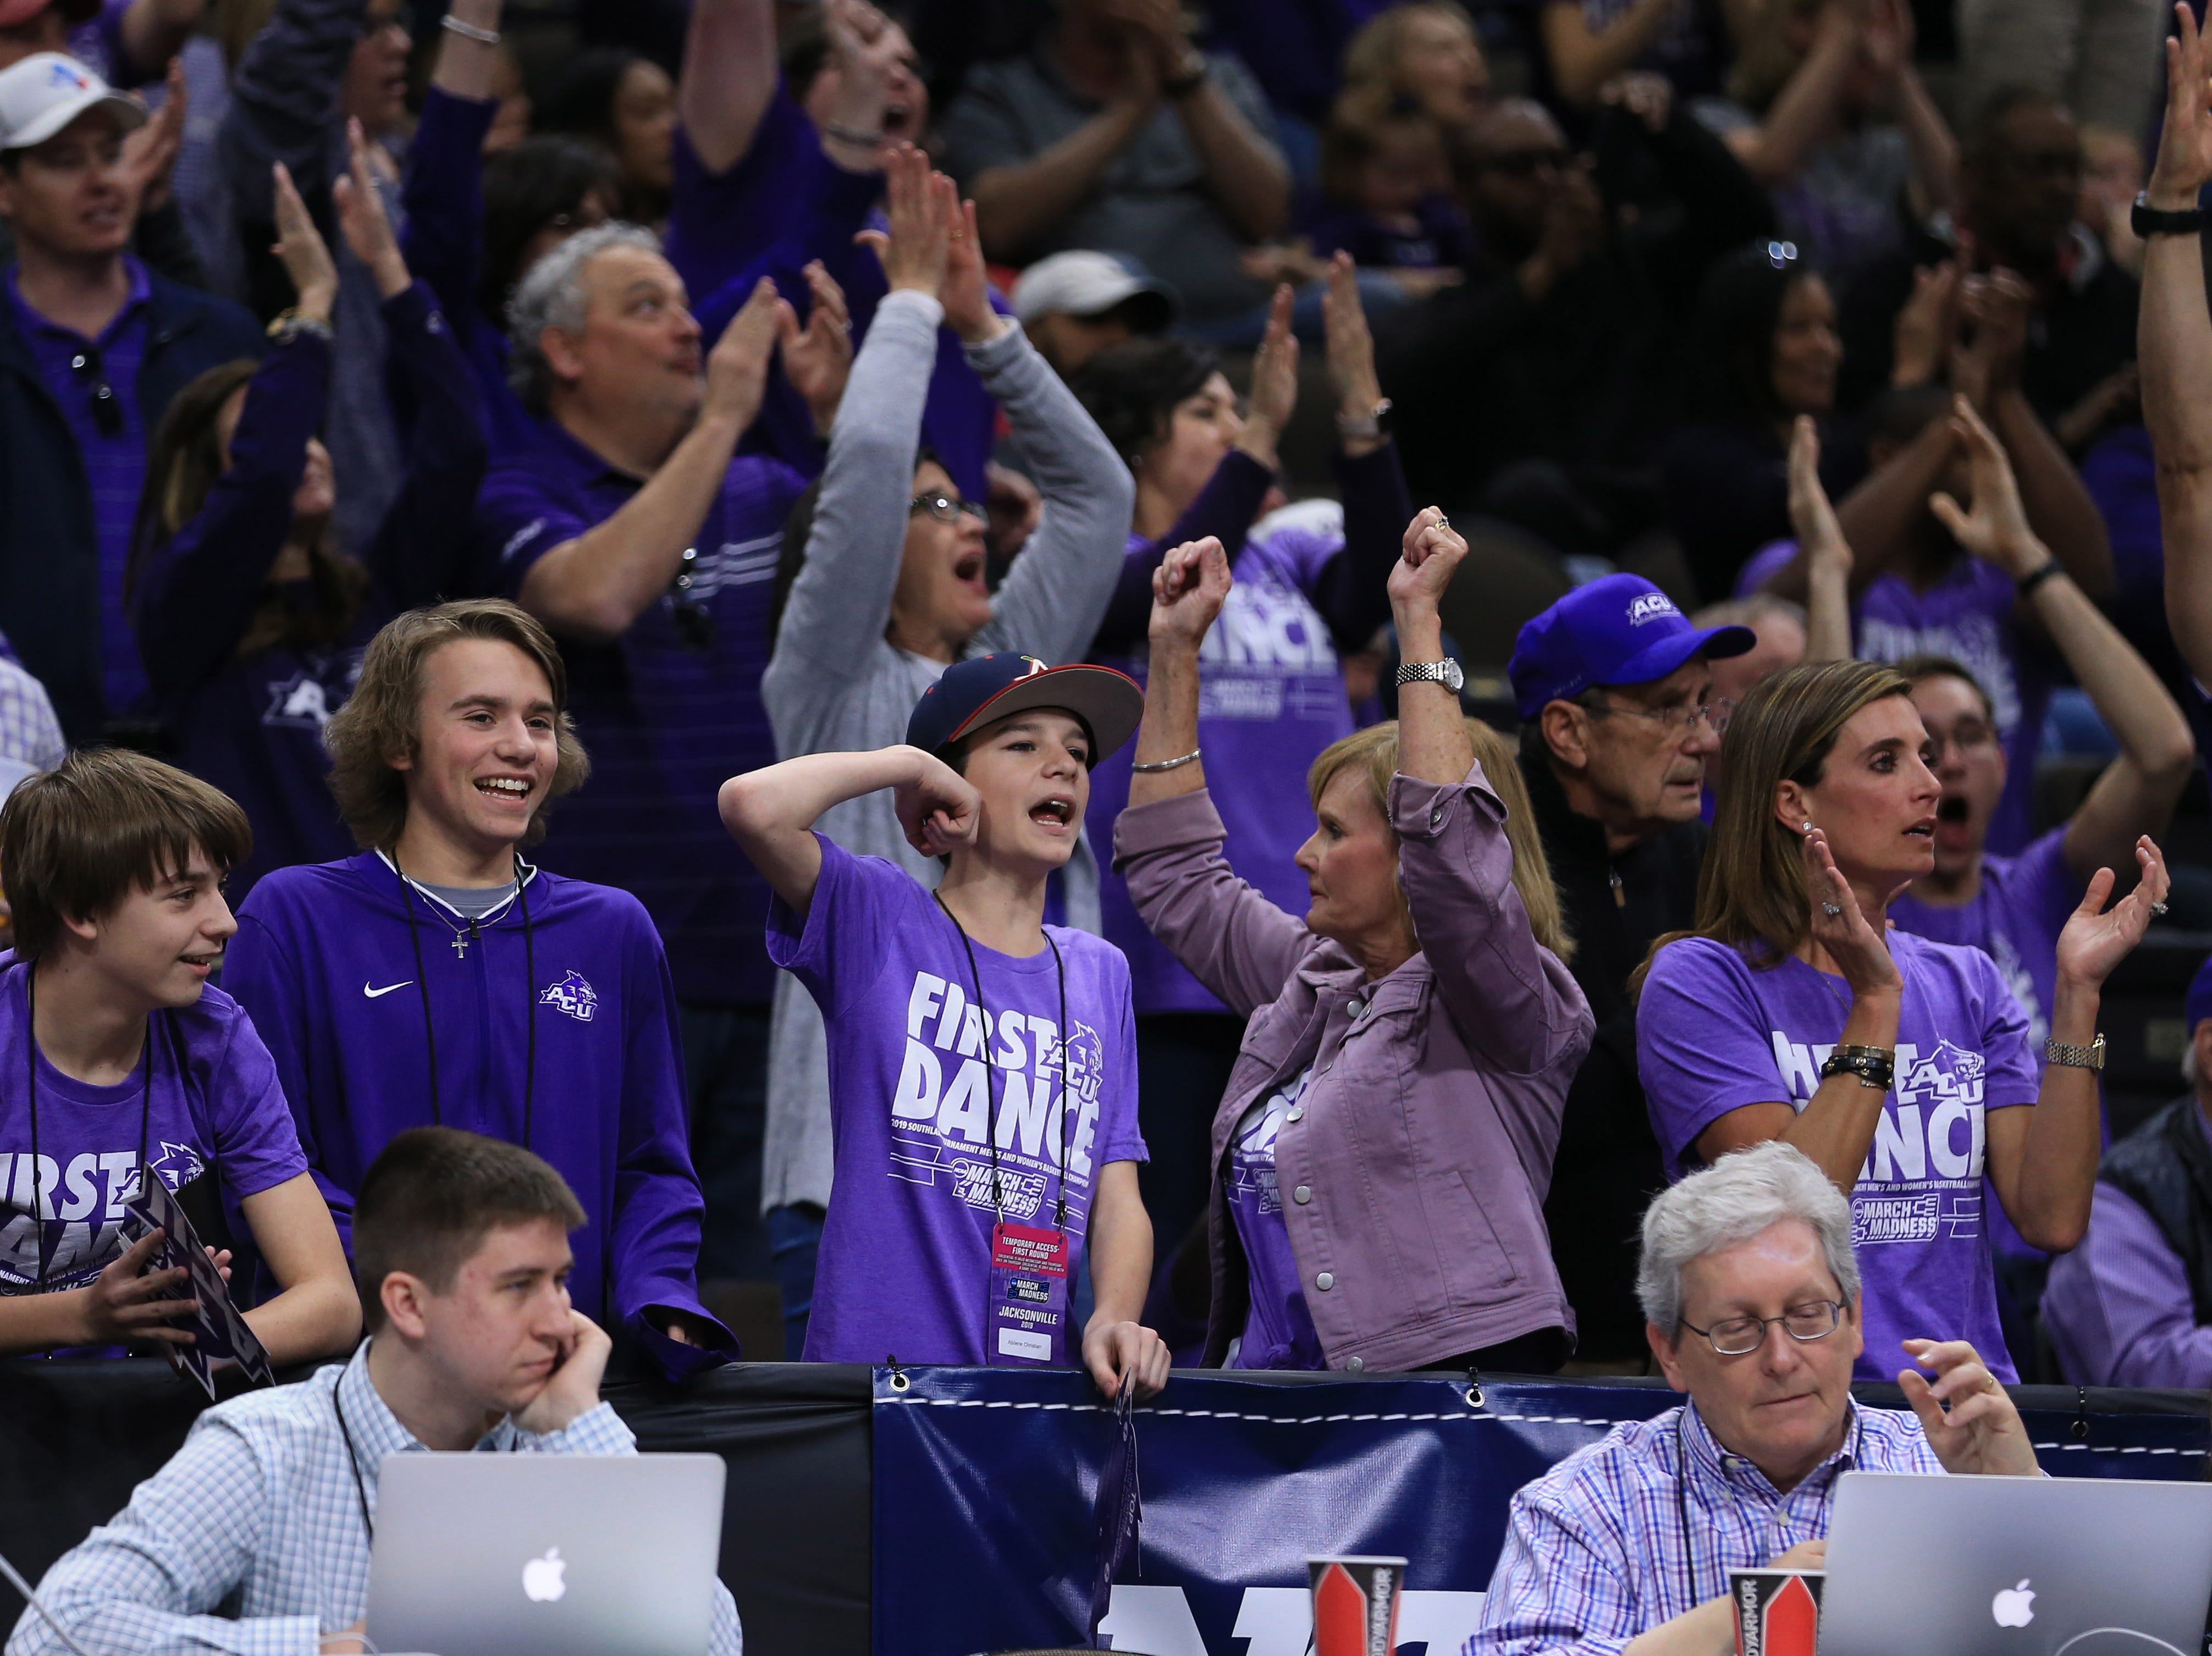 Mar 21, 2019; Jacksonville, FL, USA; Abilene Christian Wildcats fans react form the stands during the first half against the Kentucky Wildcats in the first round of the 2019 NCAA Tournament at Jacksonville Veterans Memorial Arena. Mandatory Credit: Matt Stamey-USA TODAY Sports